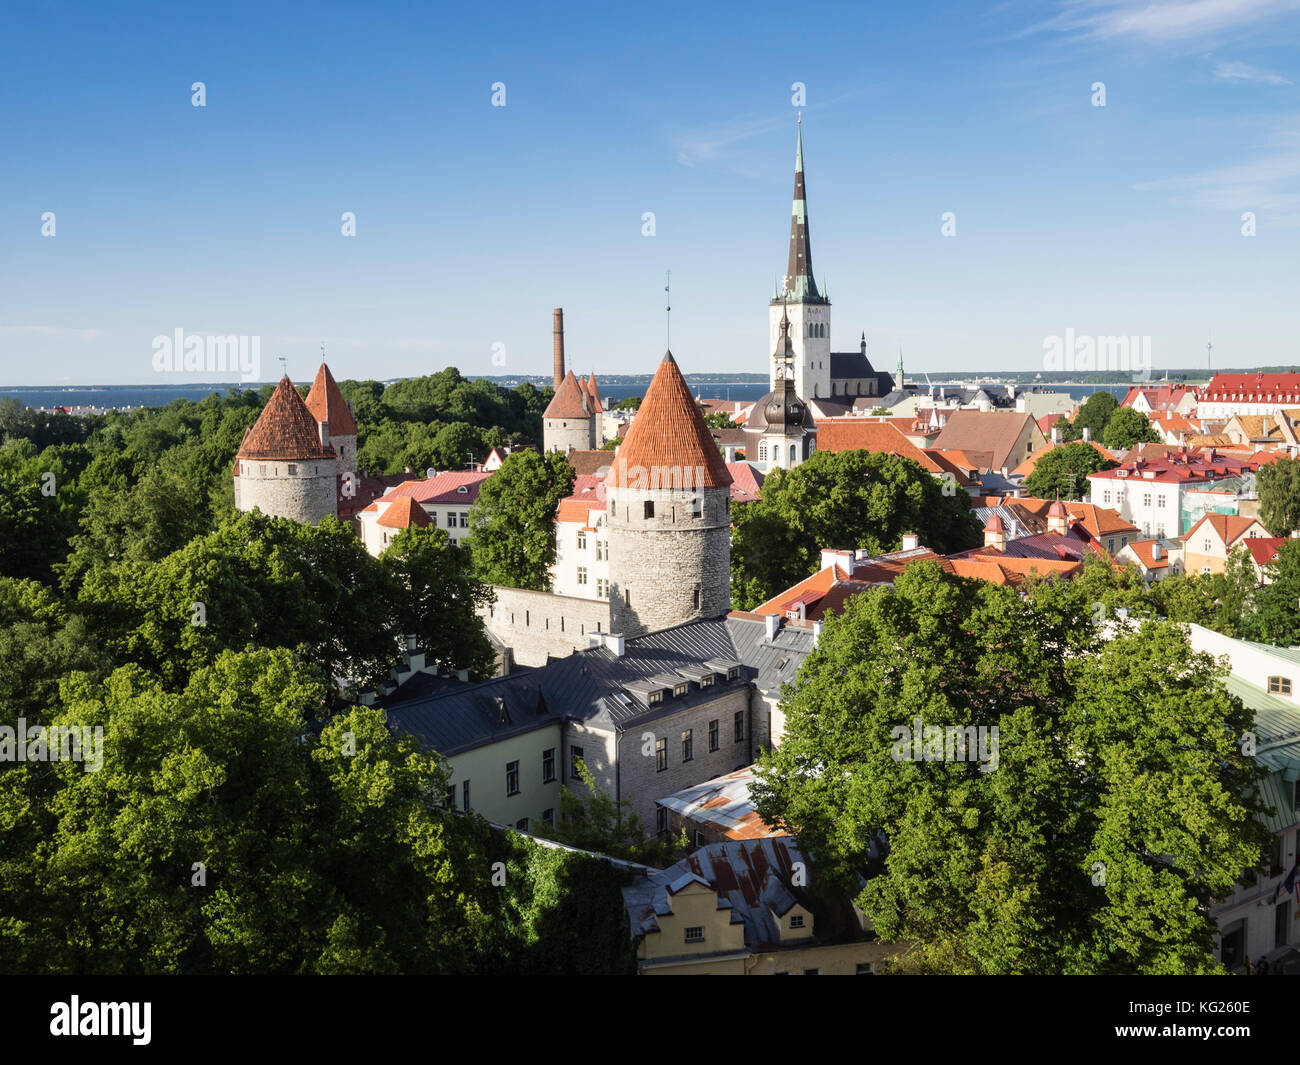 Cityscape view from the Patkuli viewing platform, Old Town, UNESCO World Heritage Site, Tallinn, Estonia, Baltic - Stock Image